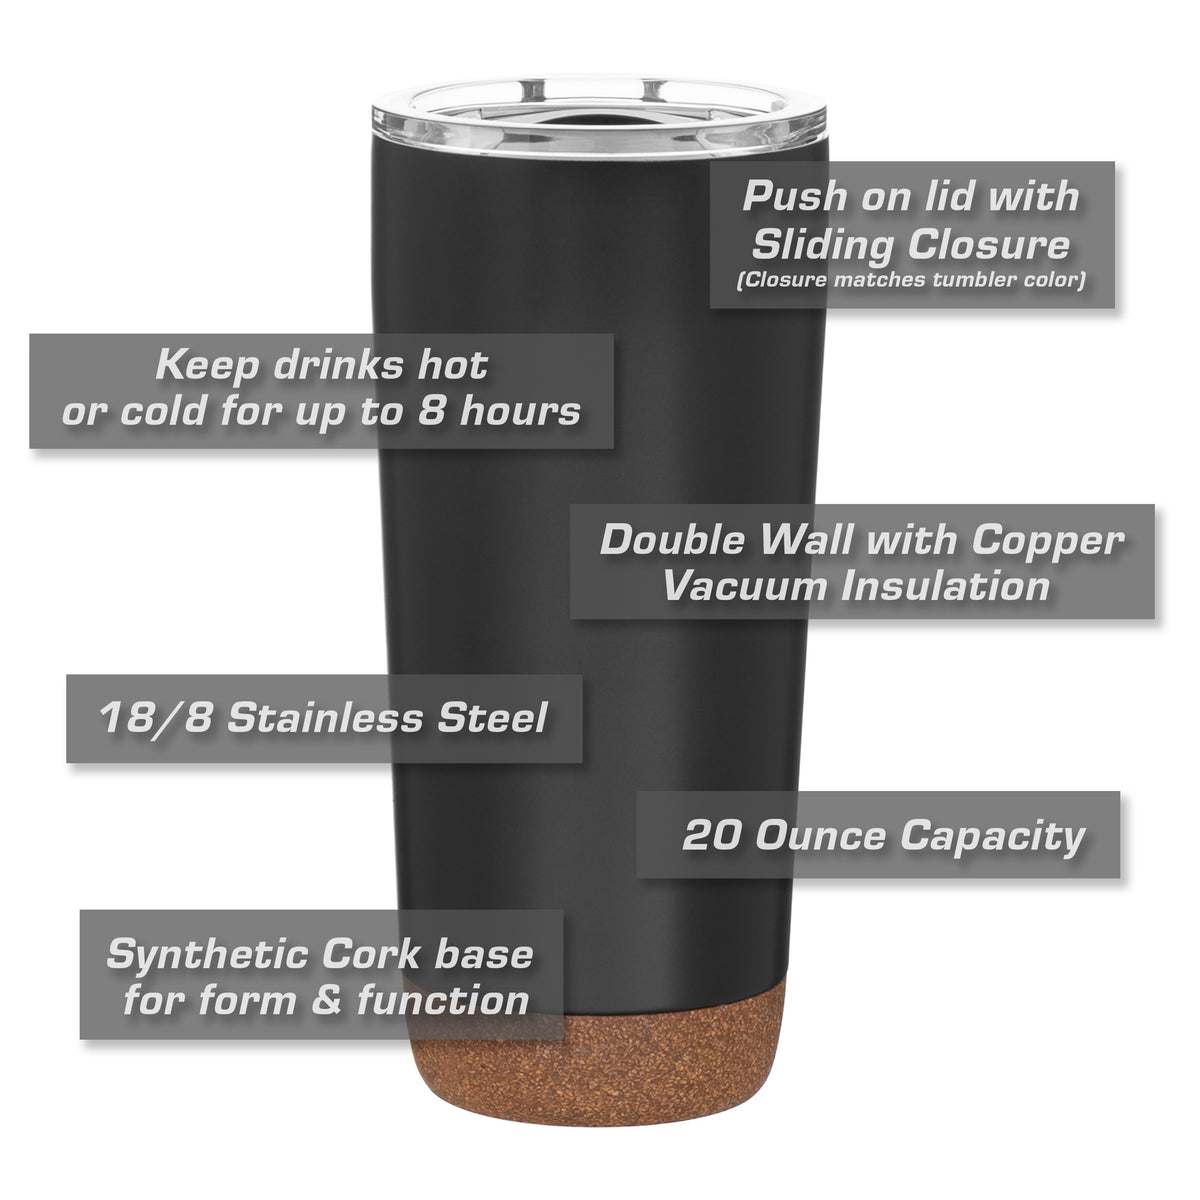 Land Rover LR4 2017 Insulated Stainless Steel Coffee Tumbler - 20 oz